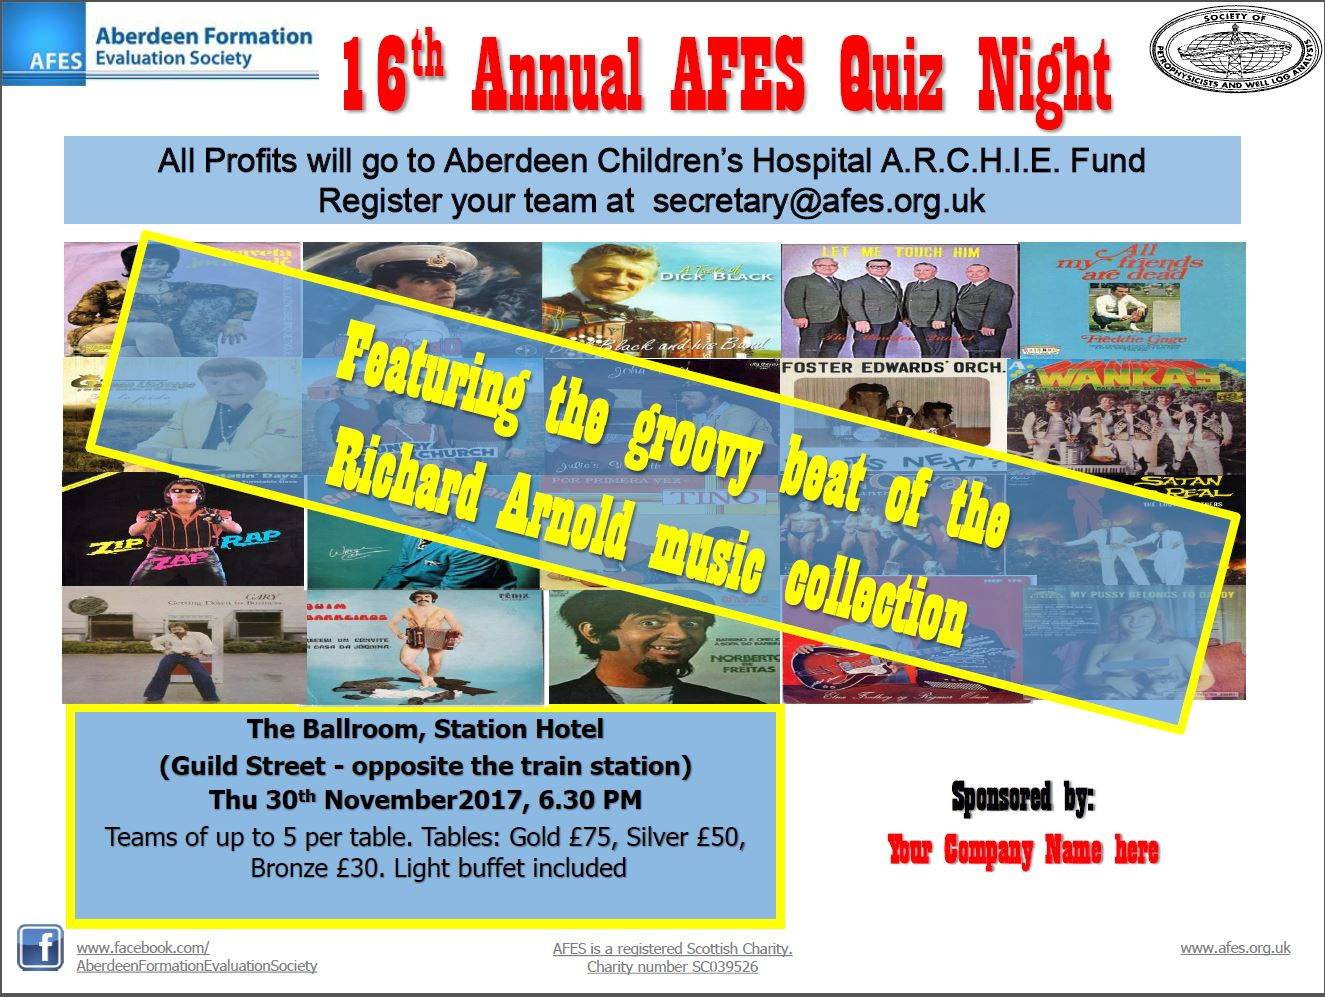 16th Annual AFES Quiz Night – 30th November 2017